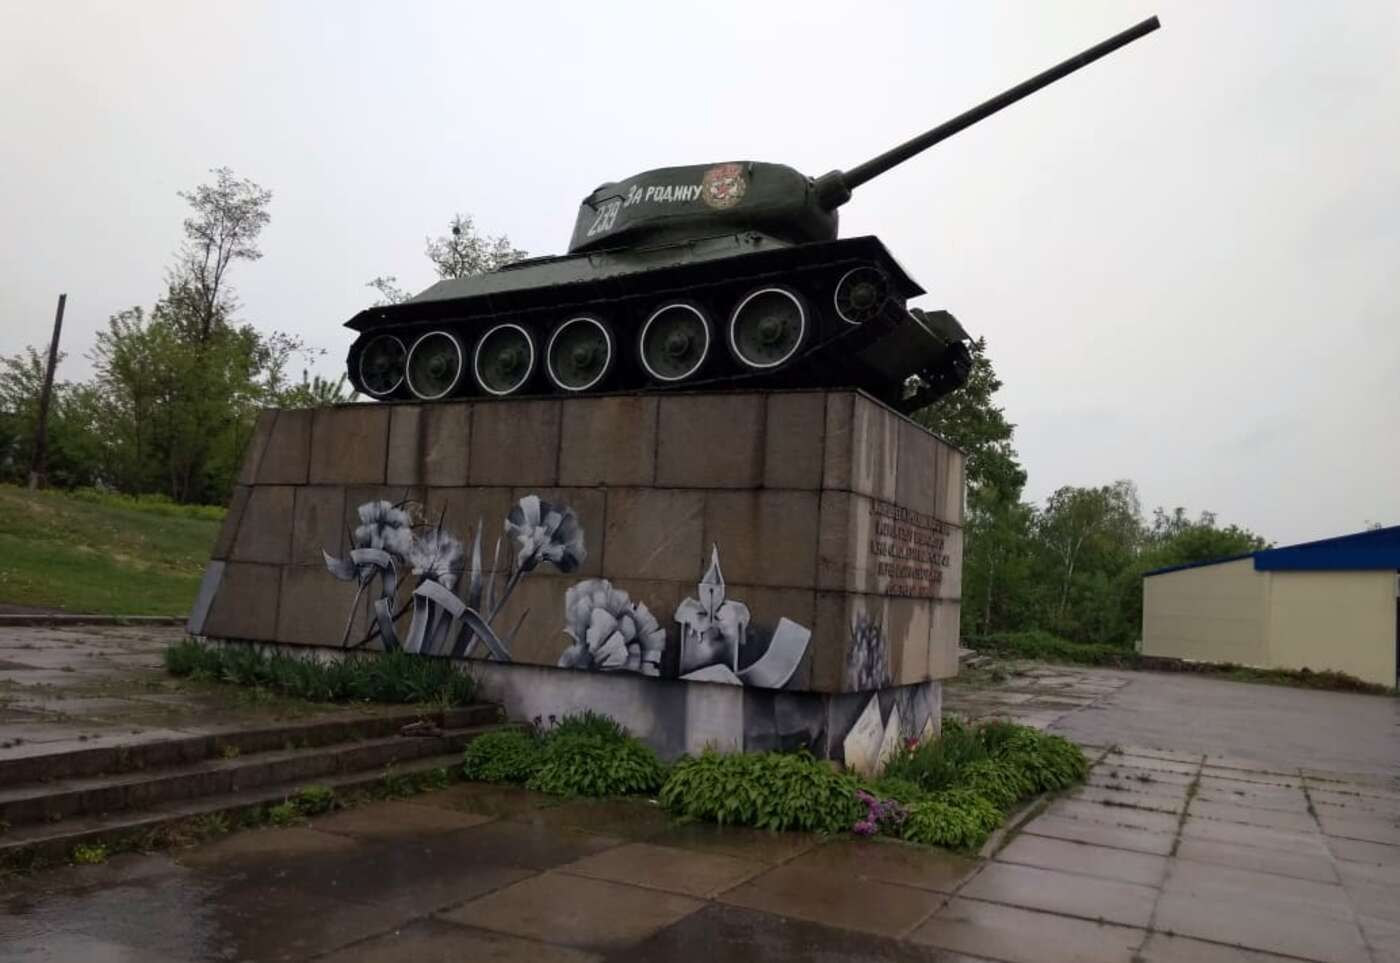 A tank in the city center